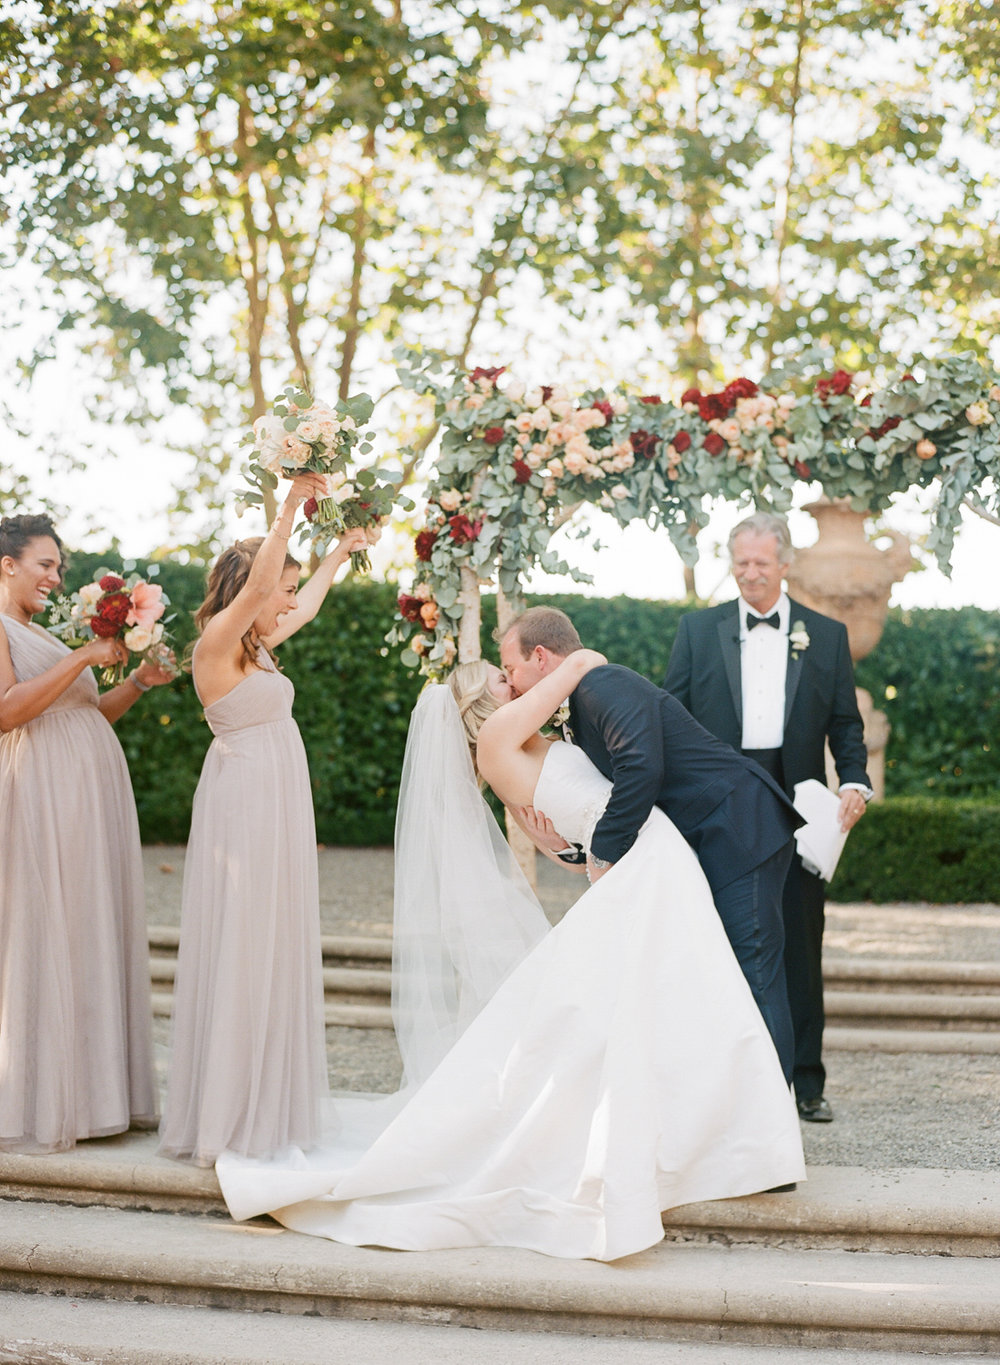 The groom dips the bride for their first kiss during their wedding ceremony at Beaulieu Gardens; Sylvie Gil Photography